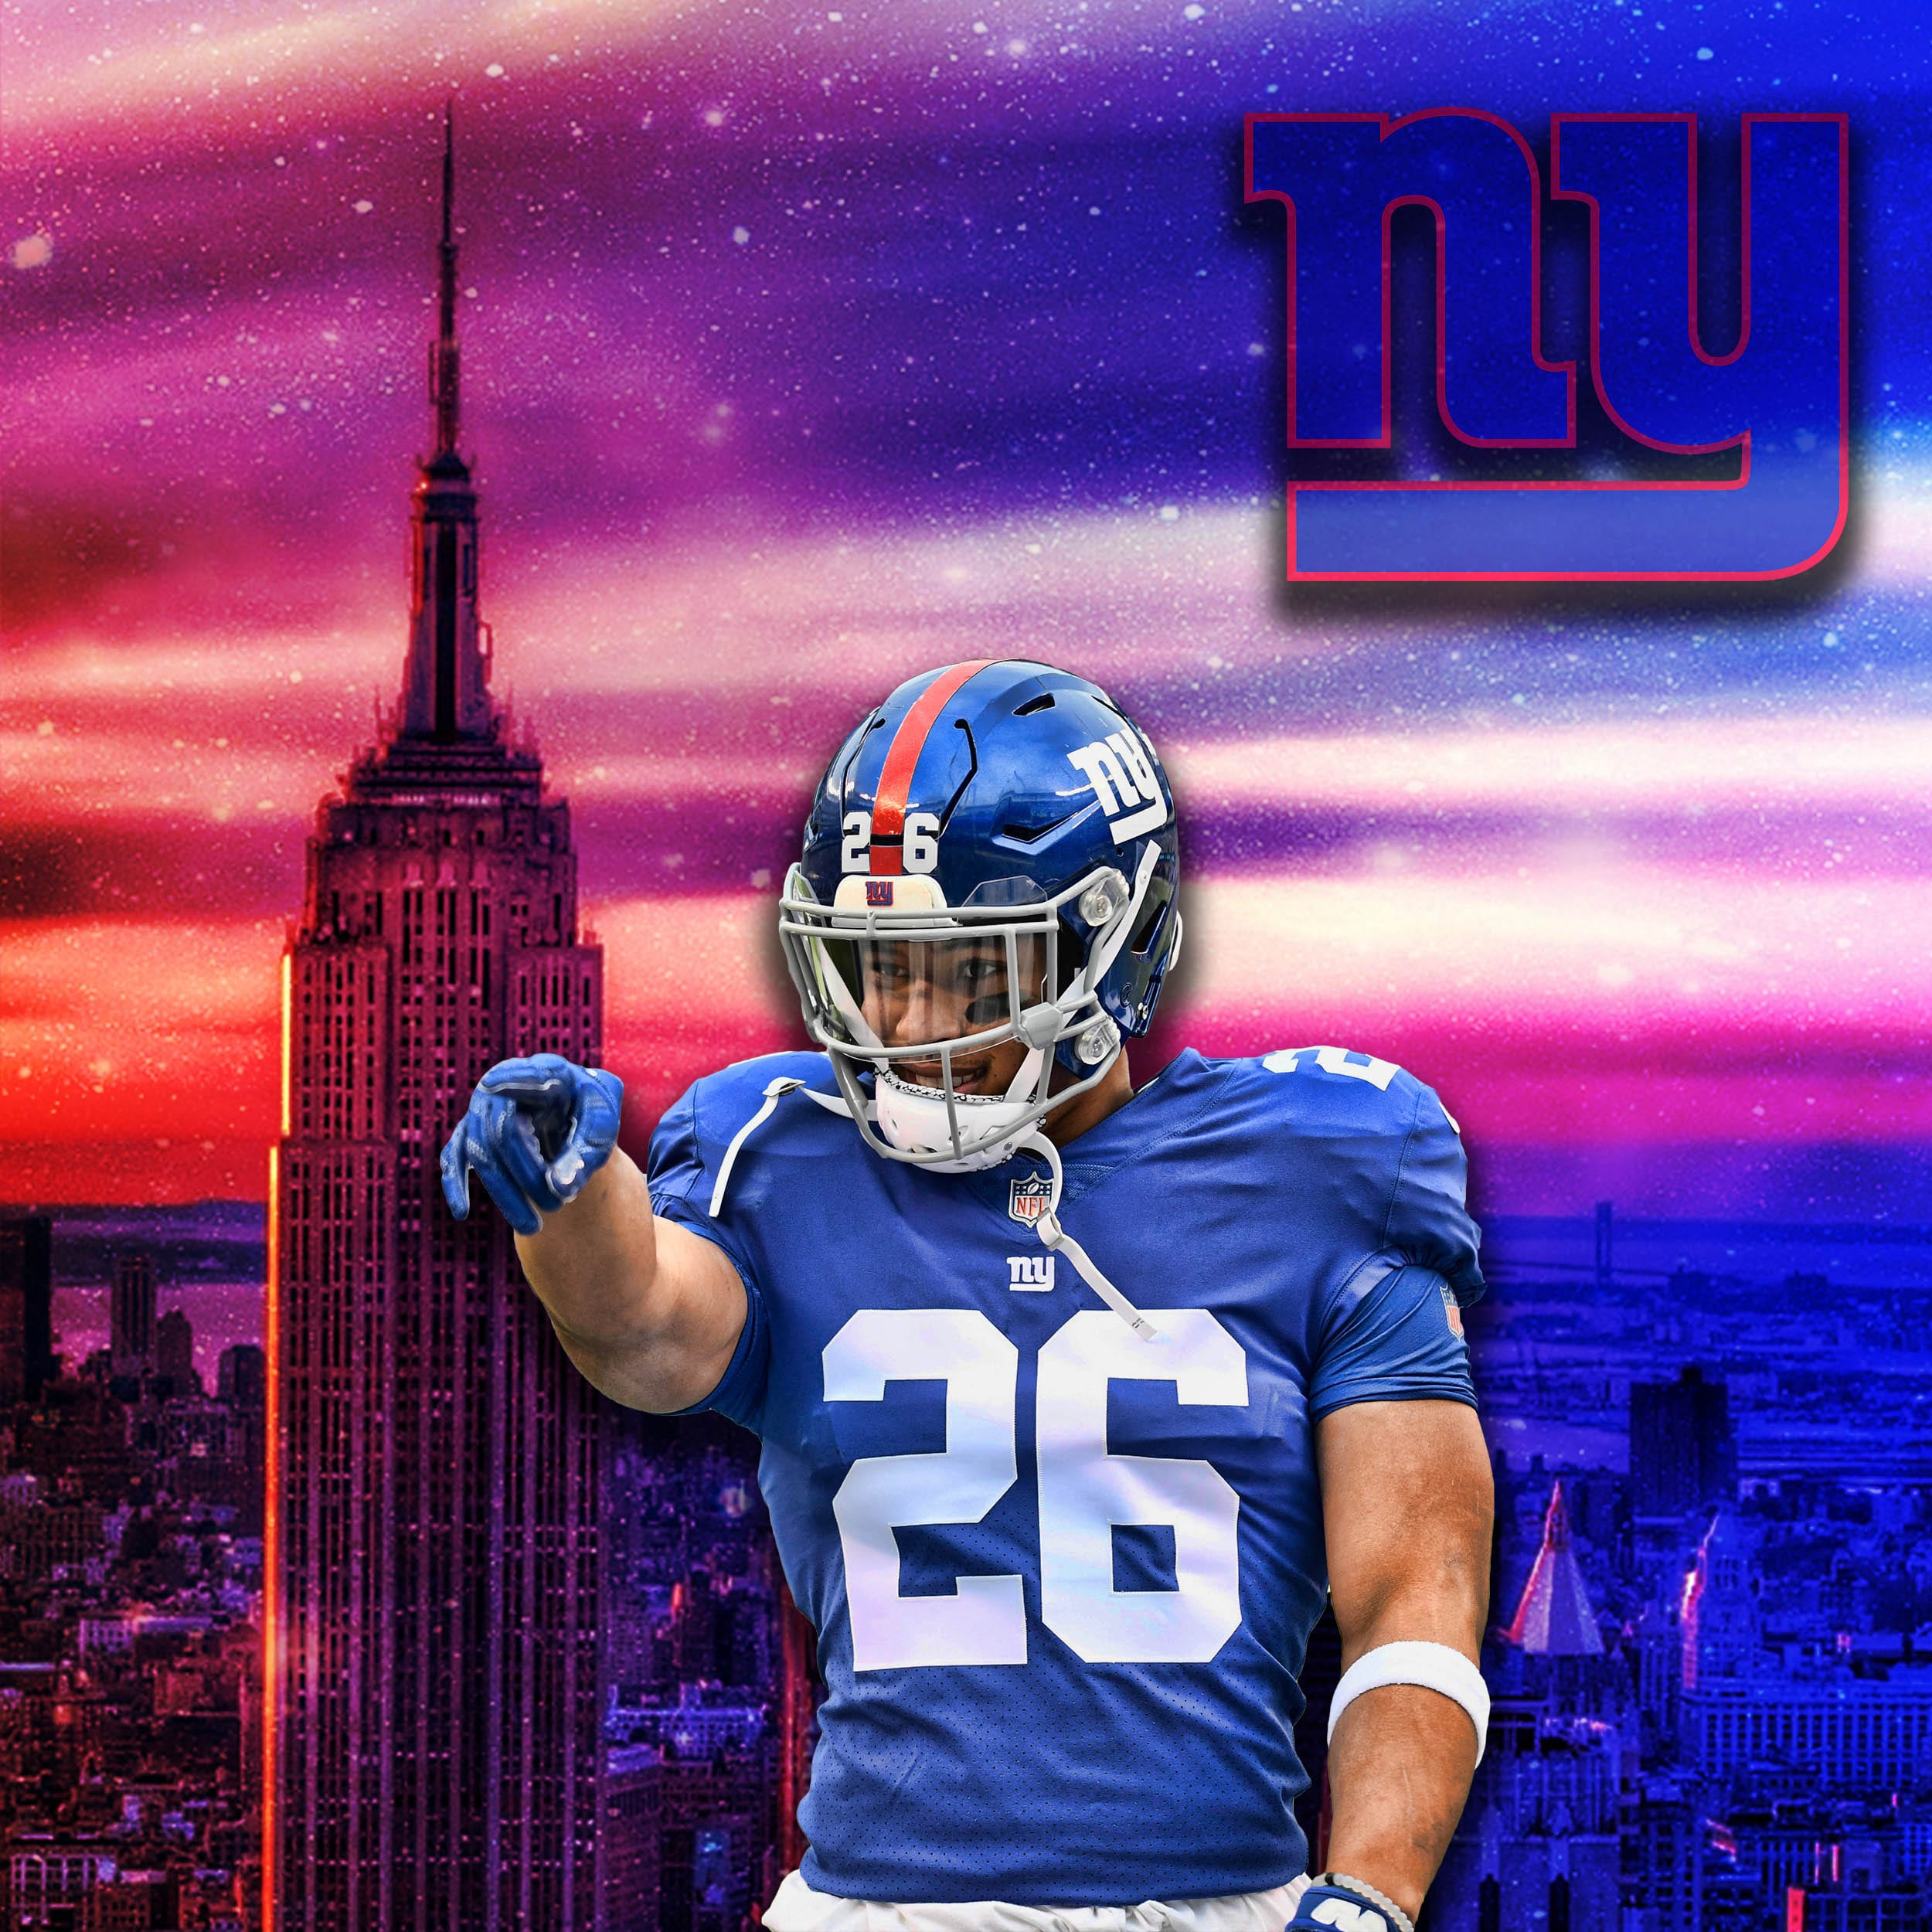 reputable site d6194 b457b New York Giants: Why It Is No Debate That Saquon Barkley Is ...